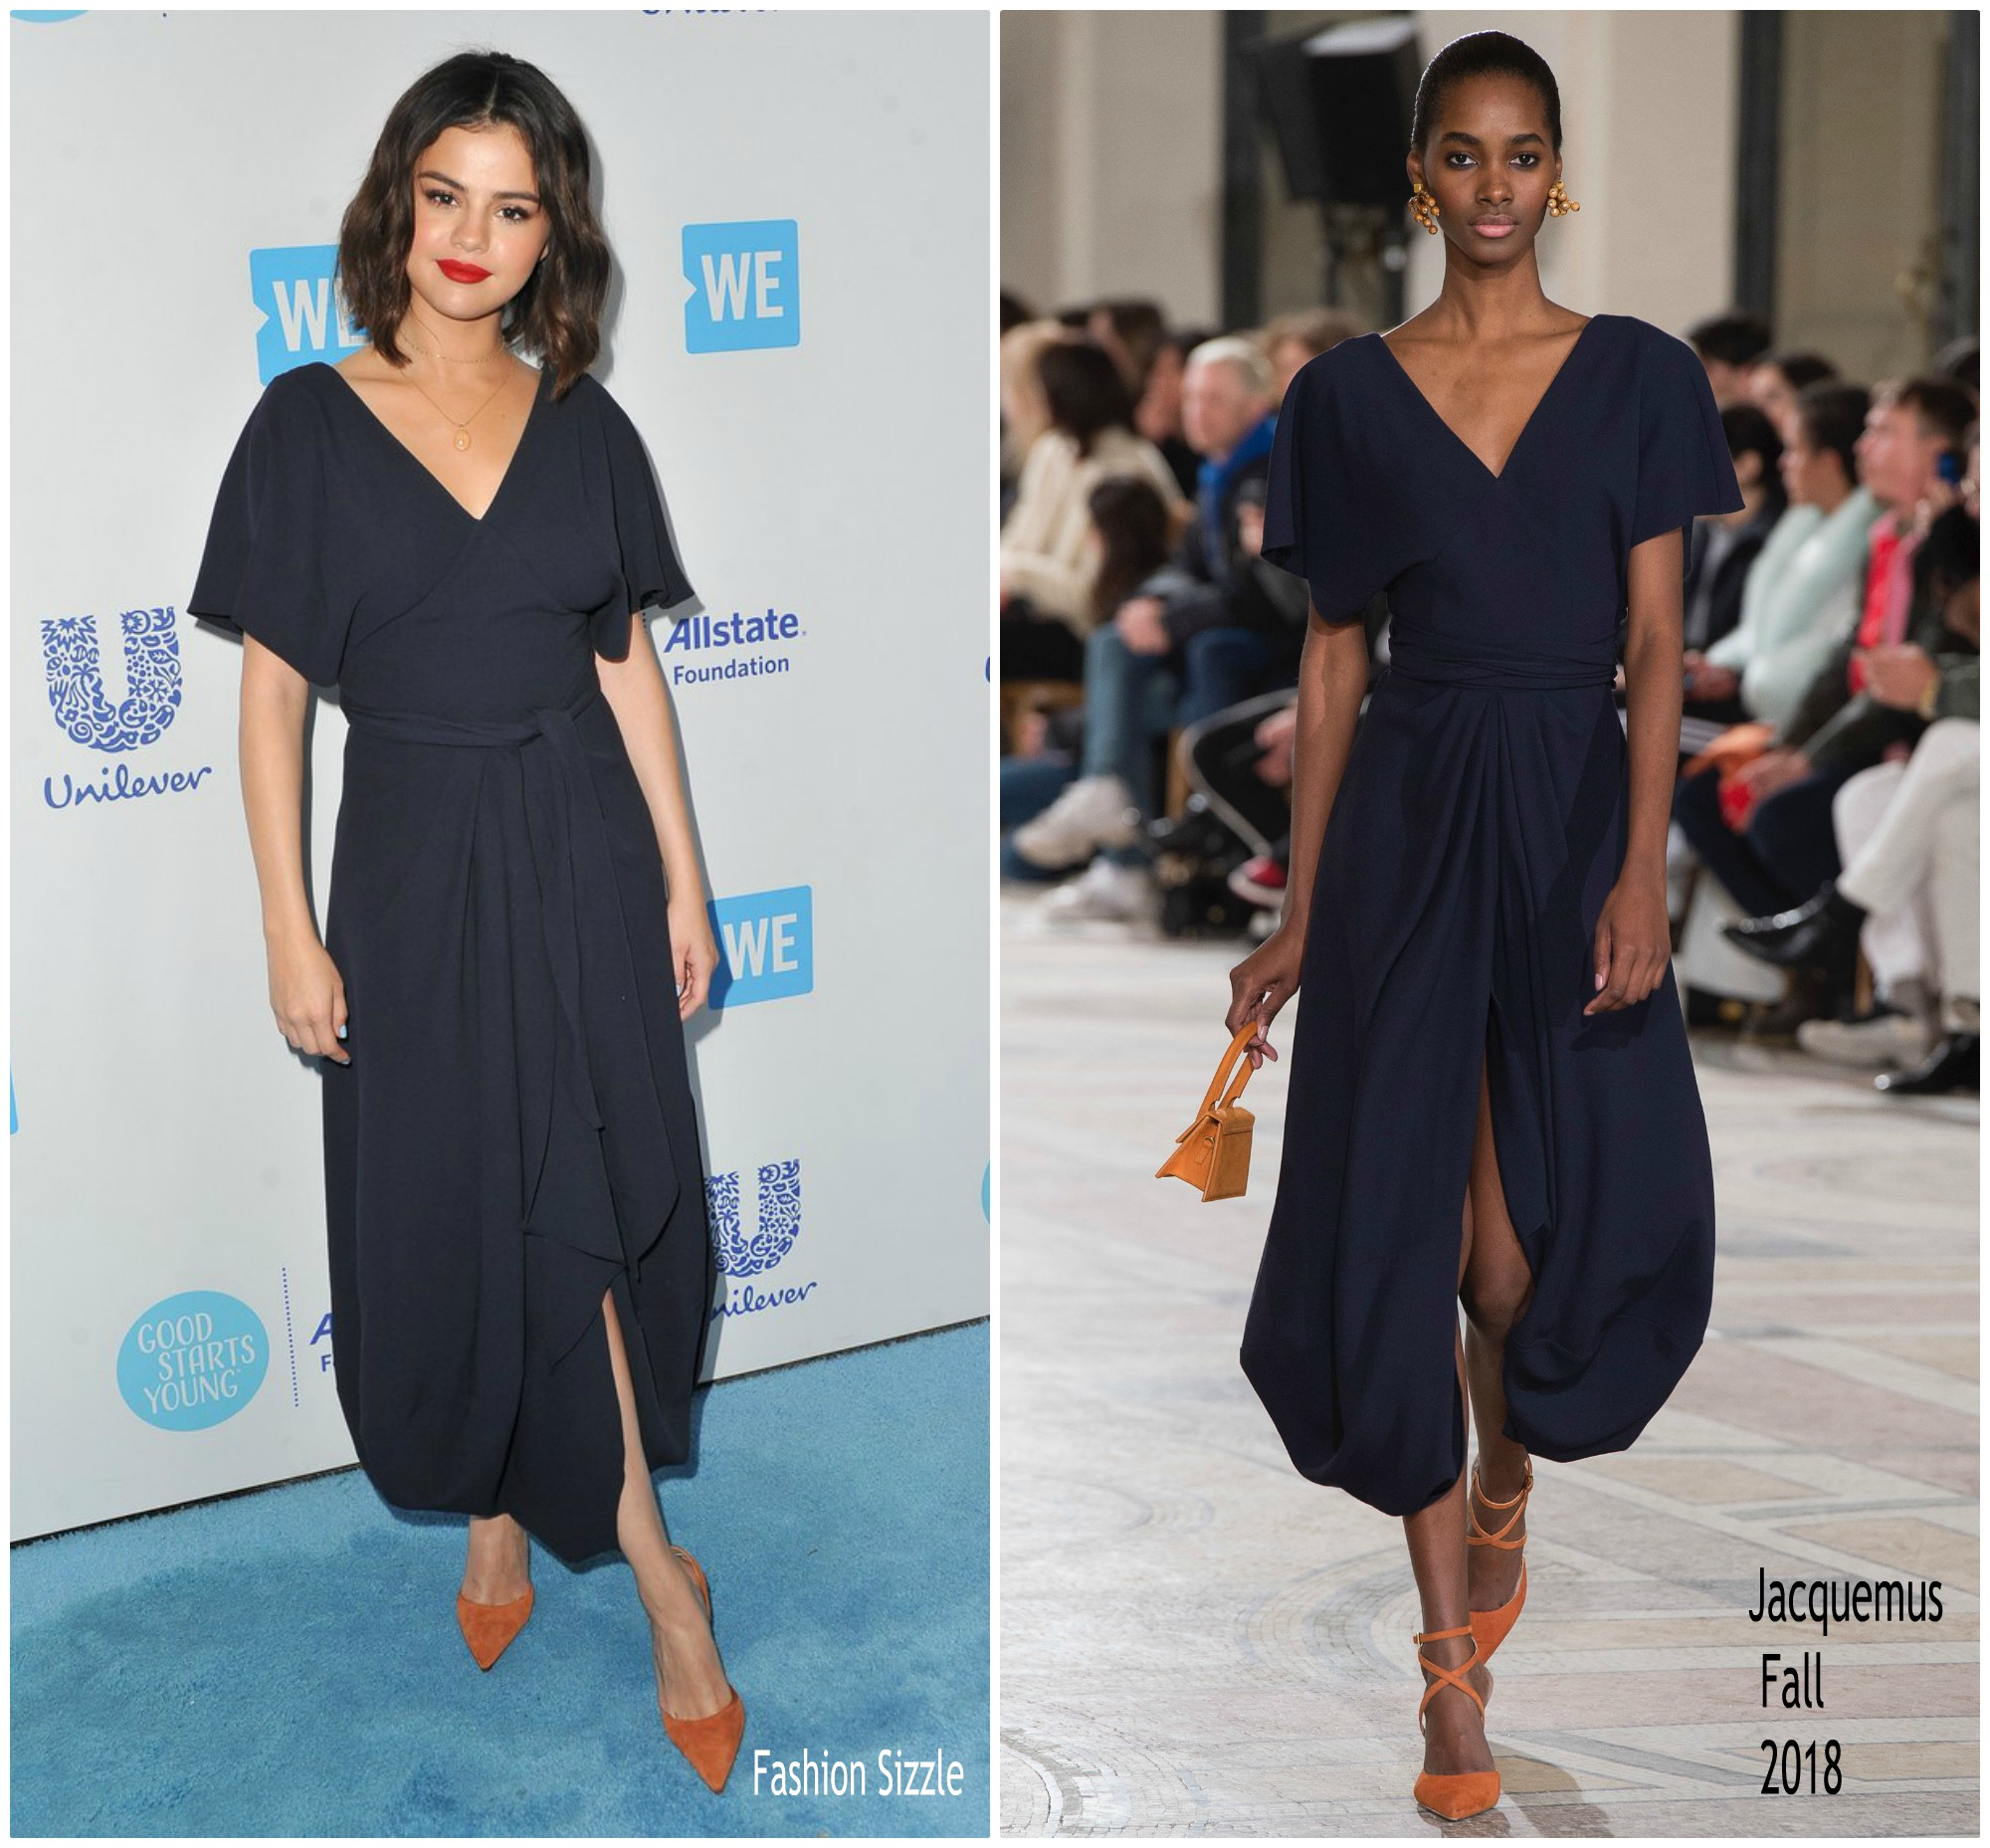 selena-gomez-in-jacquemus-weday